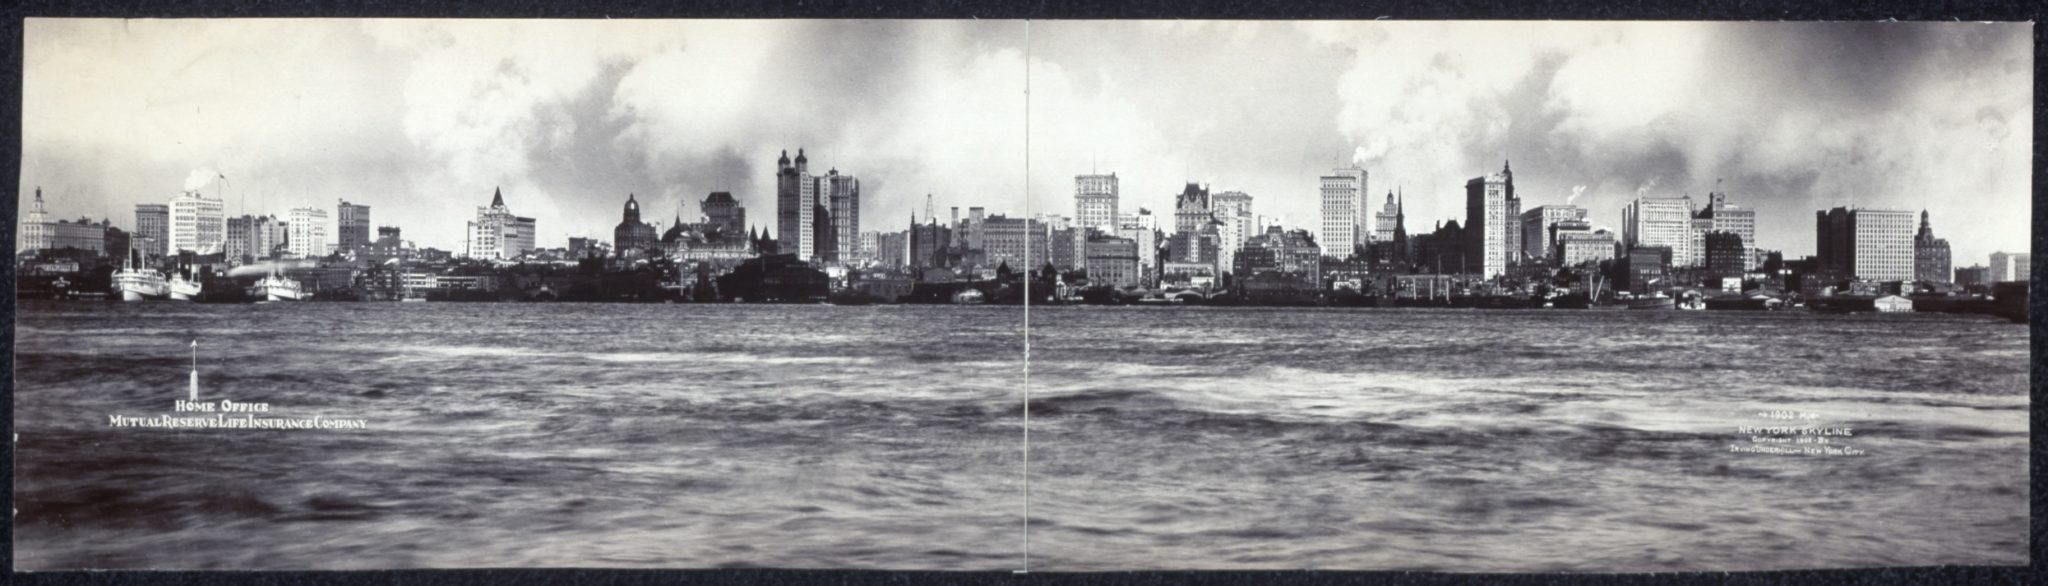 New York Skyline 1902